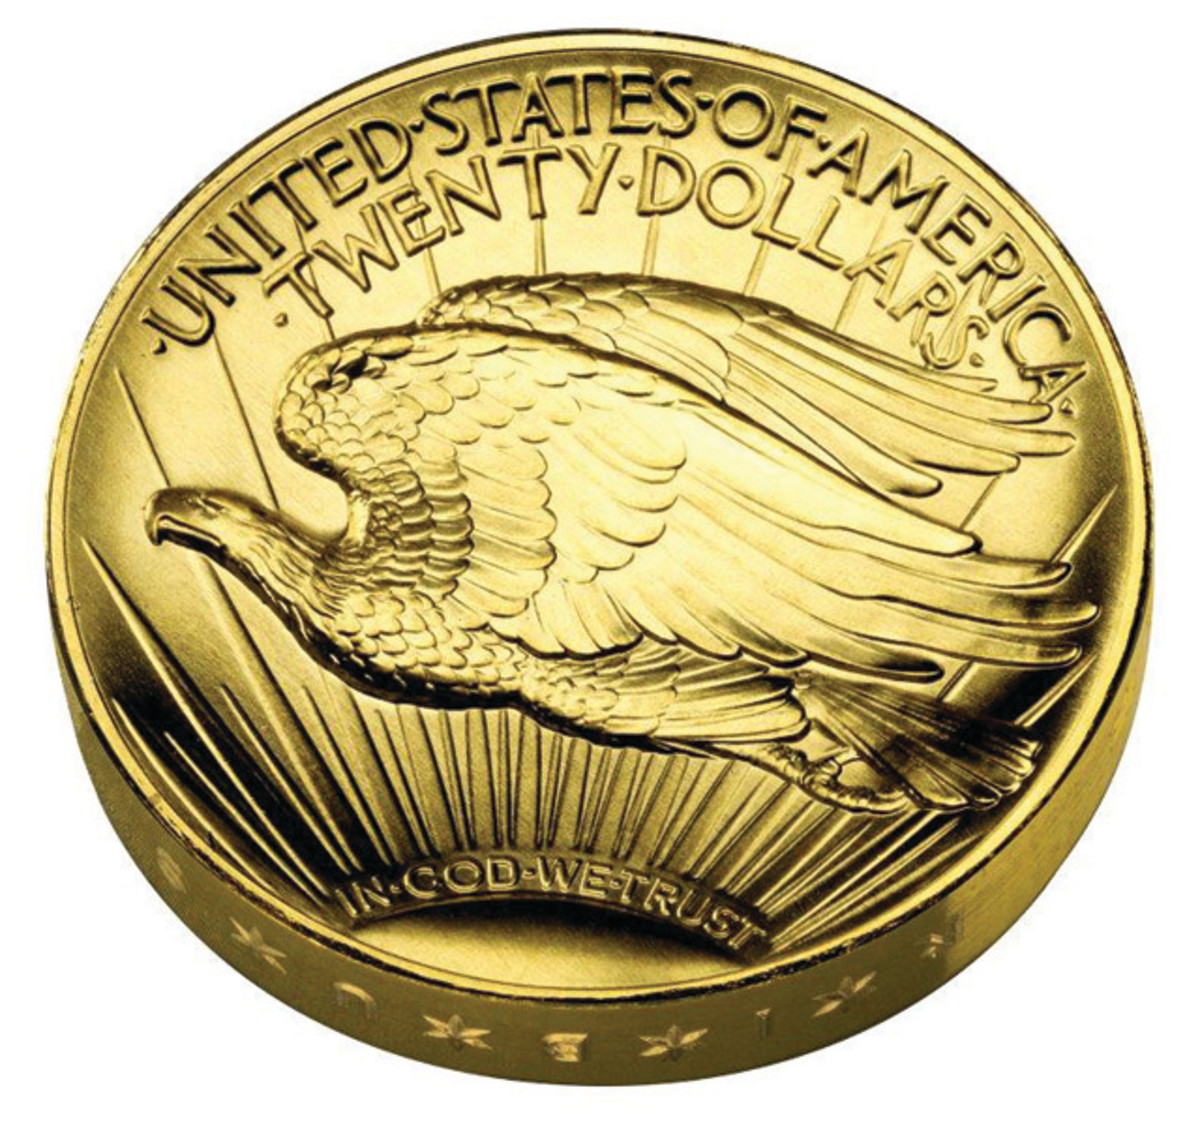 Reverse of the 2009 Ultra High Relief gold coin